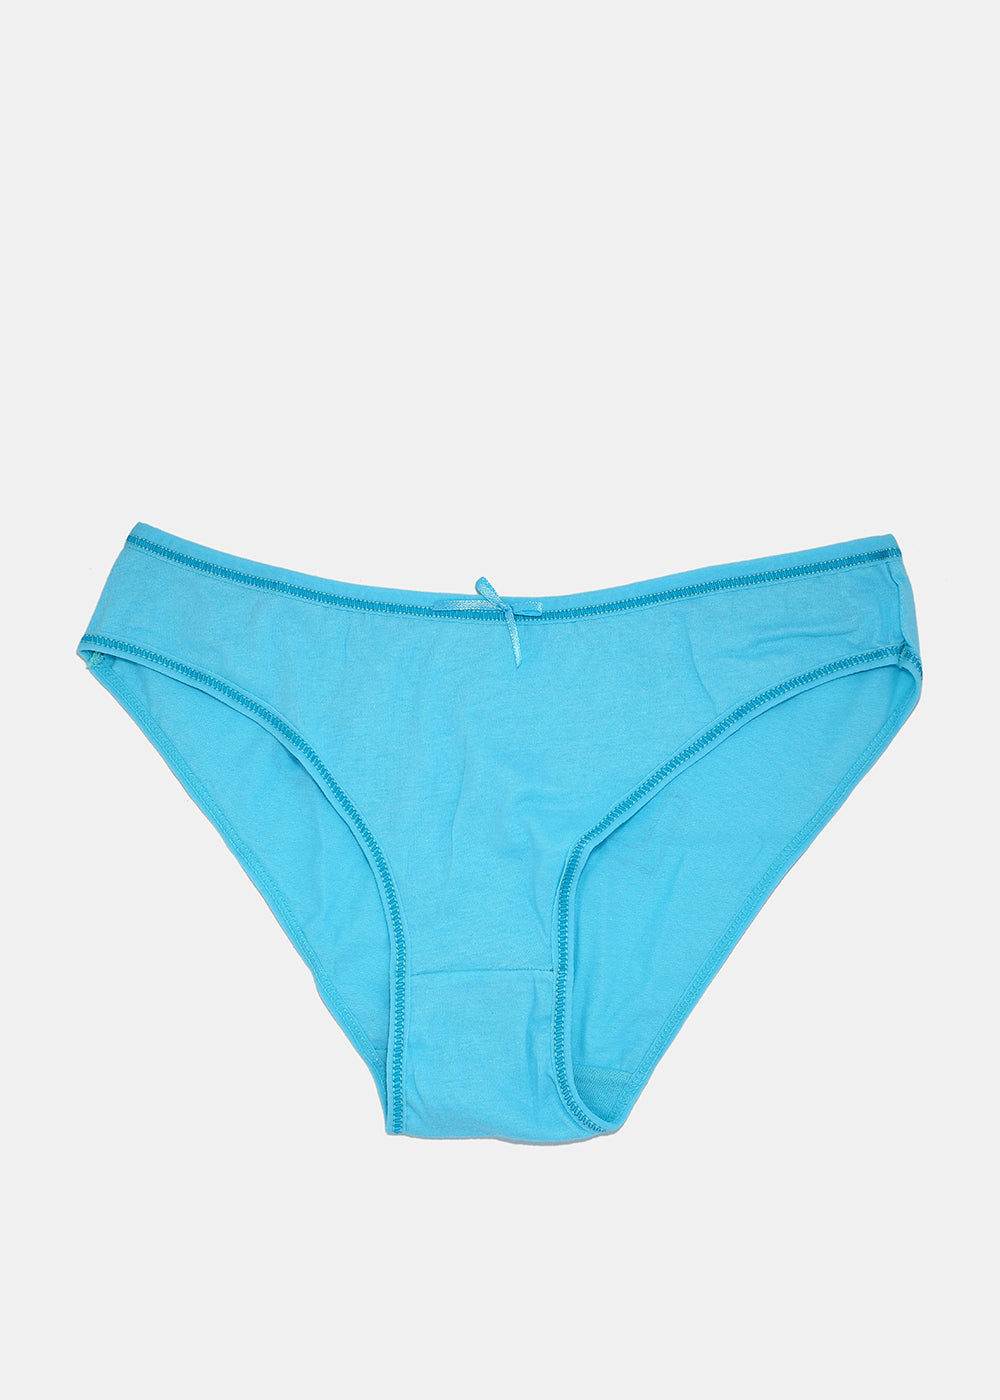 LOVE XOXO Print Brief Panty- Teal